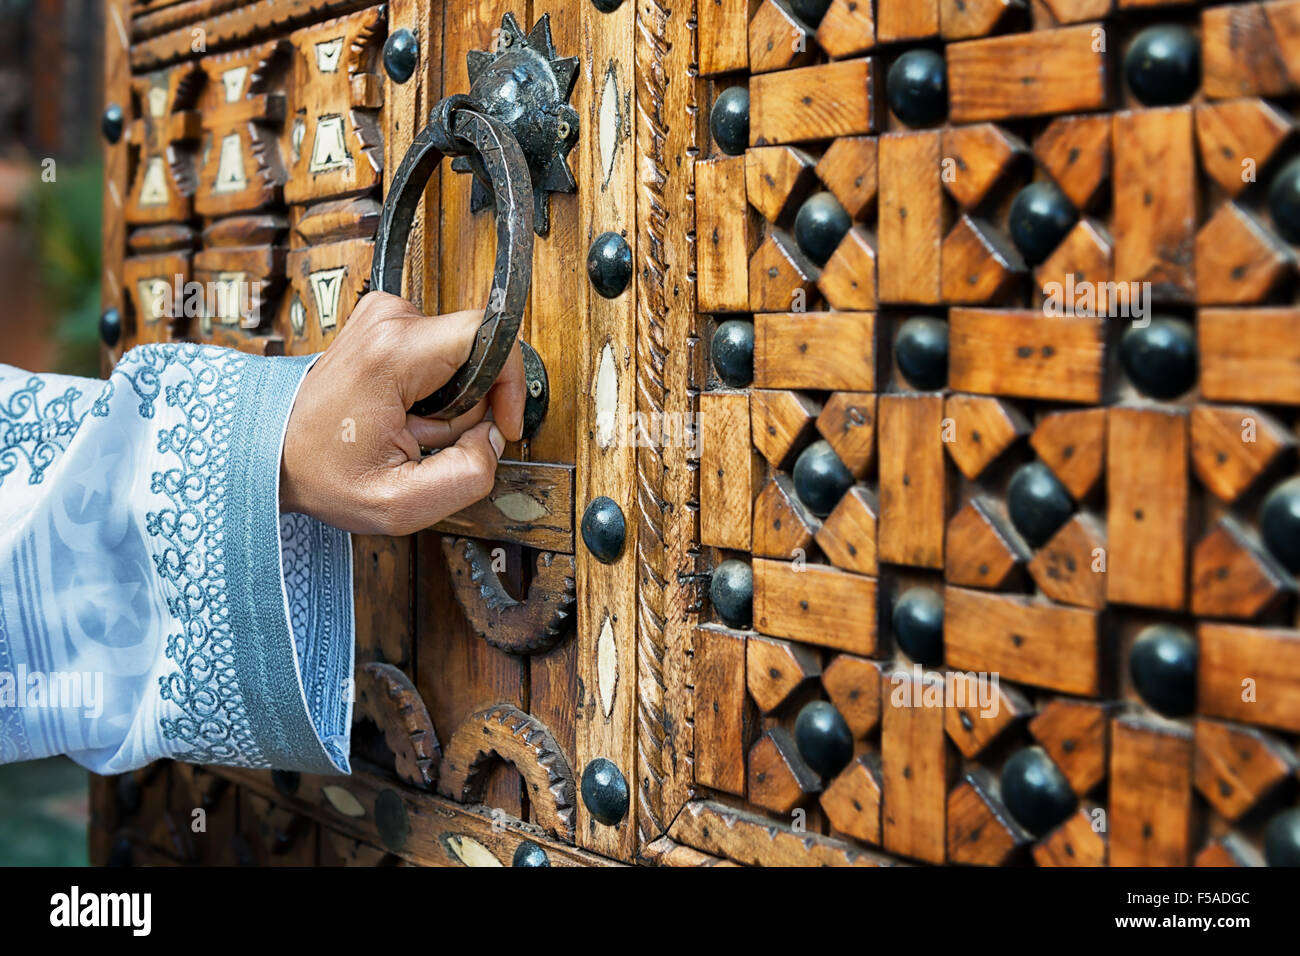 A hand holding a door handle of a traditional, wooden, Moroccan door, in South Morocco. - Stock Image